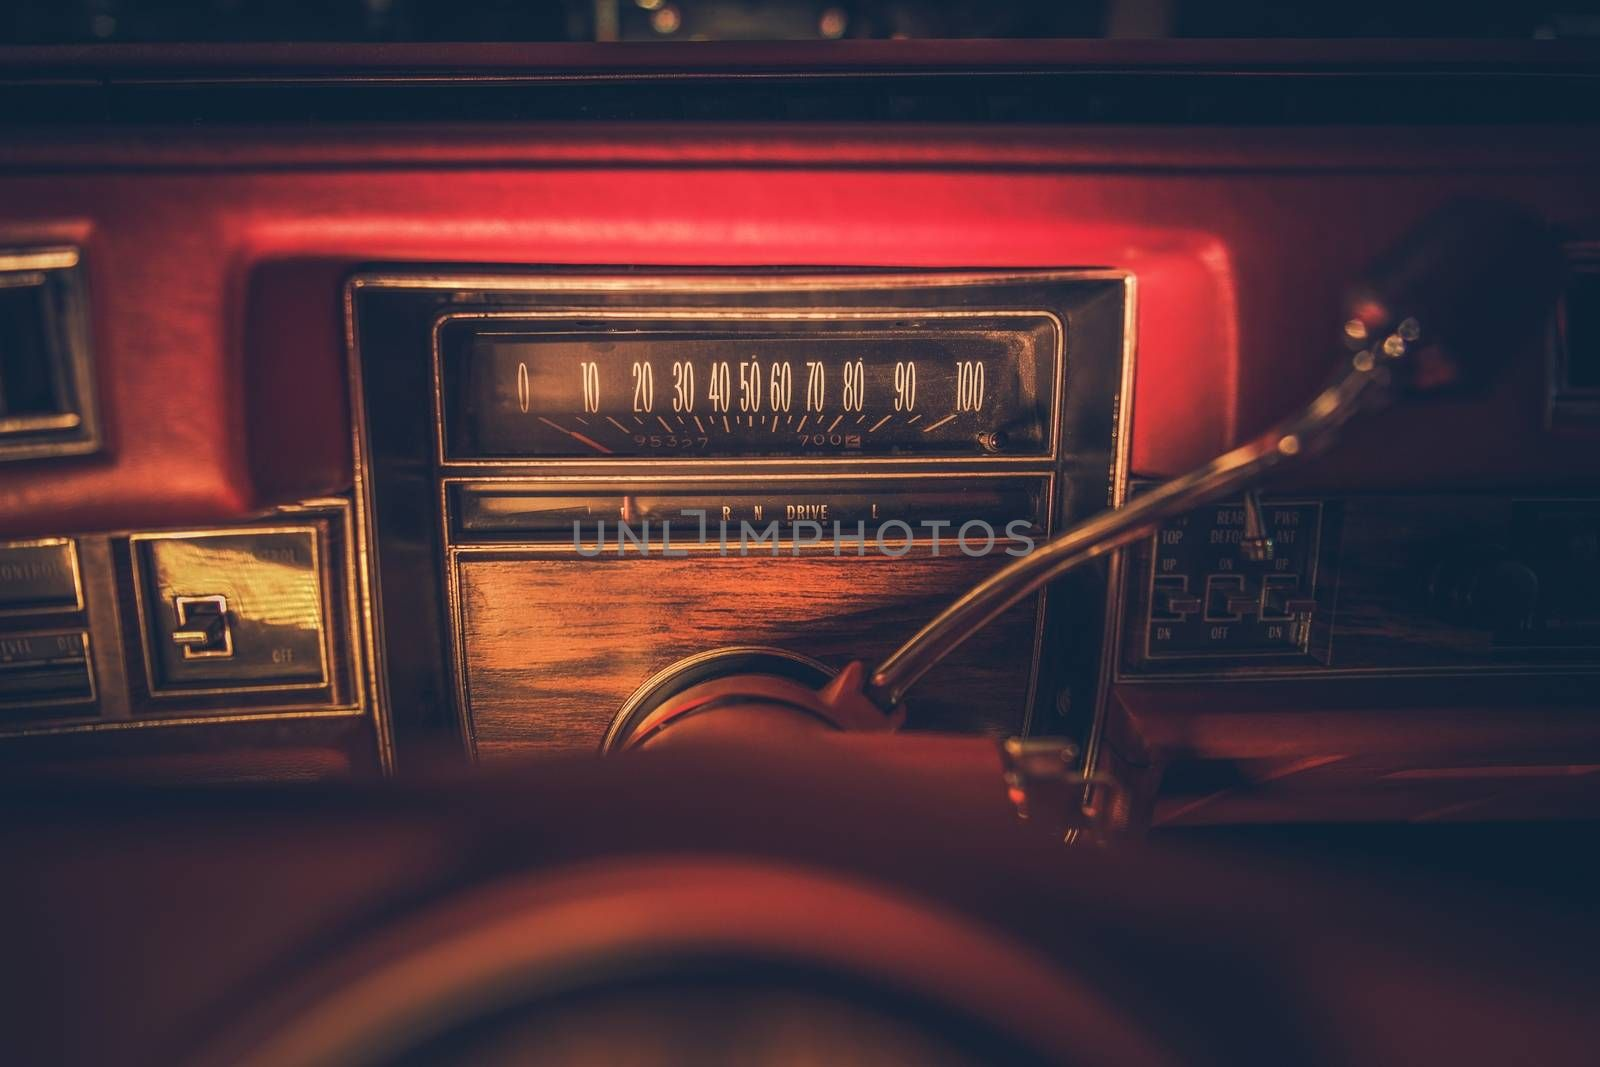 Vintage American Classic Car Dashboard with Speedometer. History of American Transportation